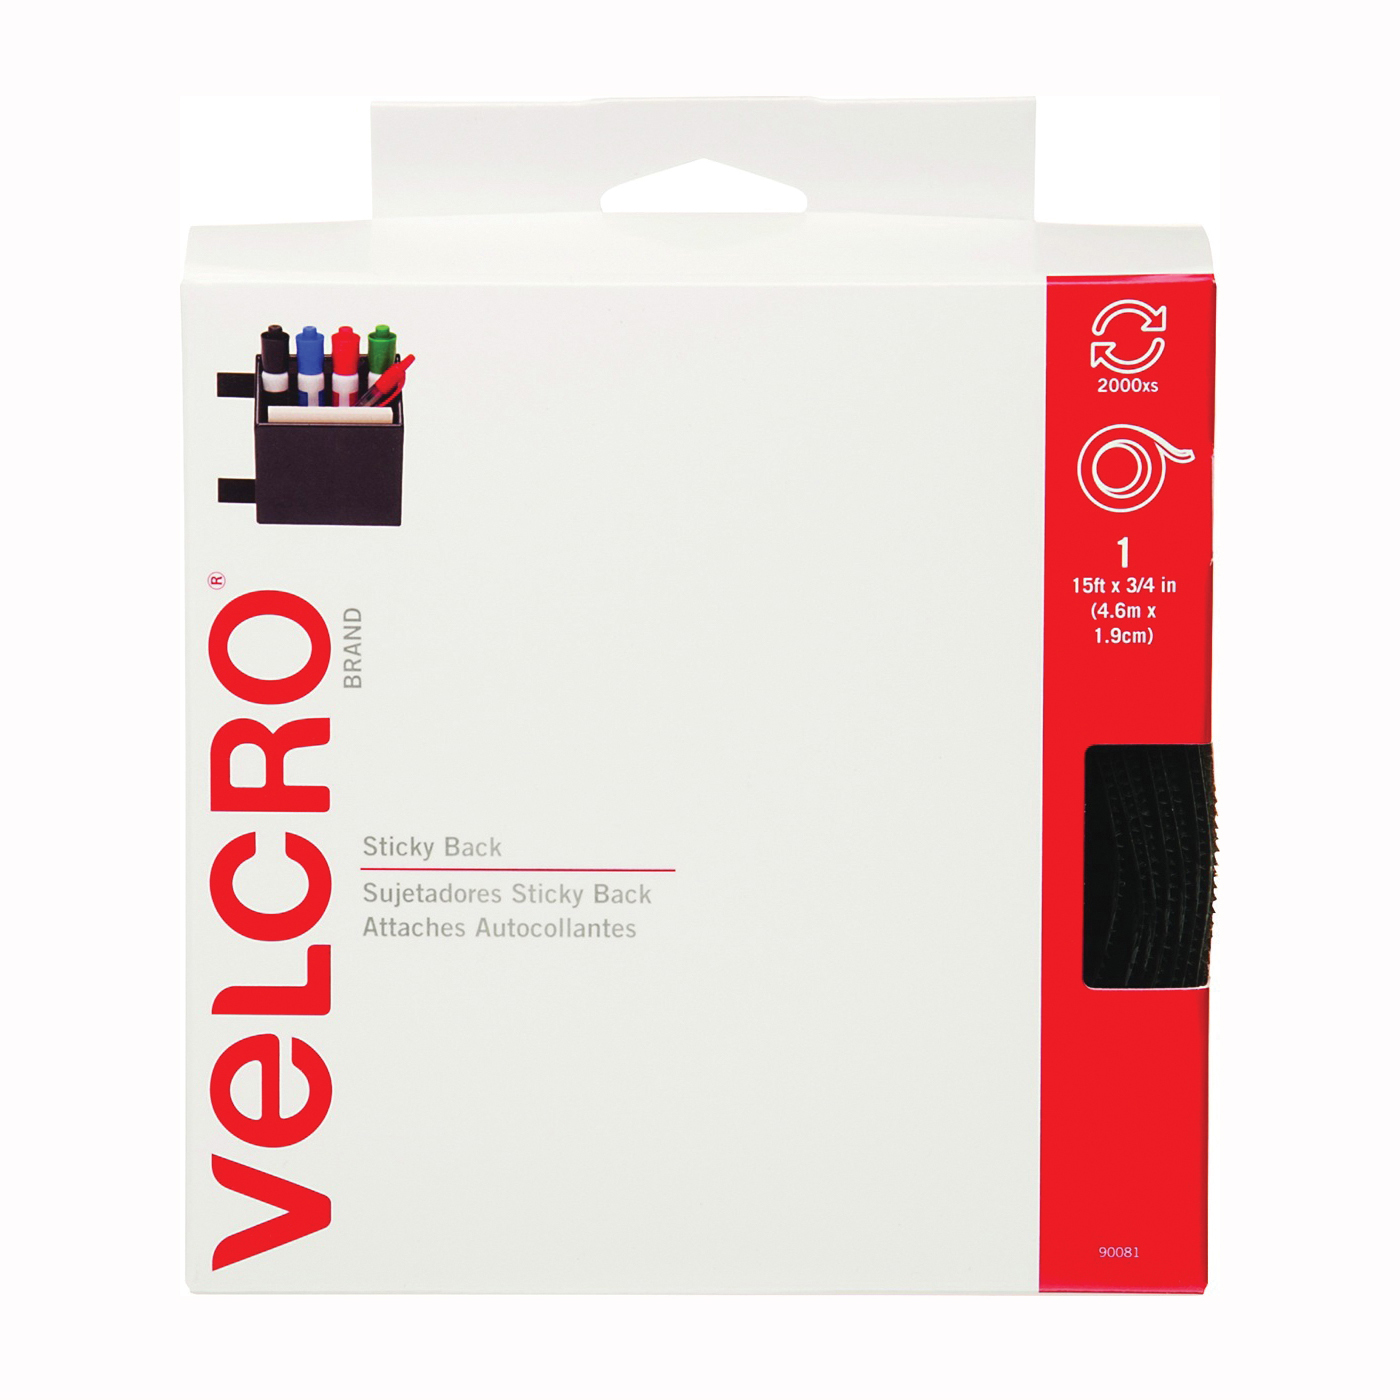 Picture of VELCRO Brand 90083 Fastener, 3/4 in W, 15 ft L, Beige